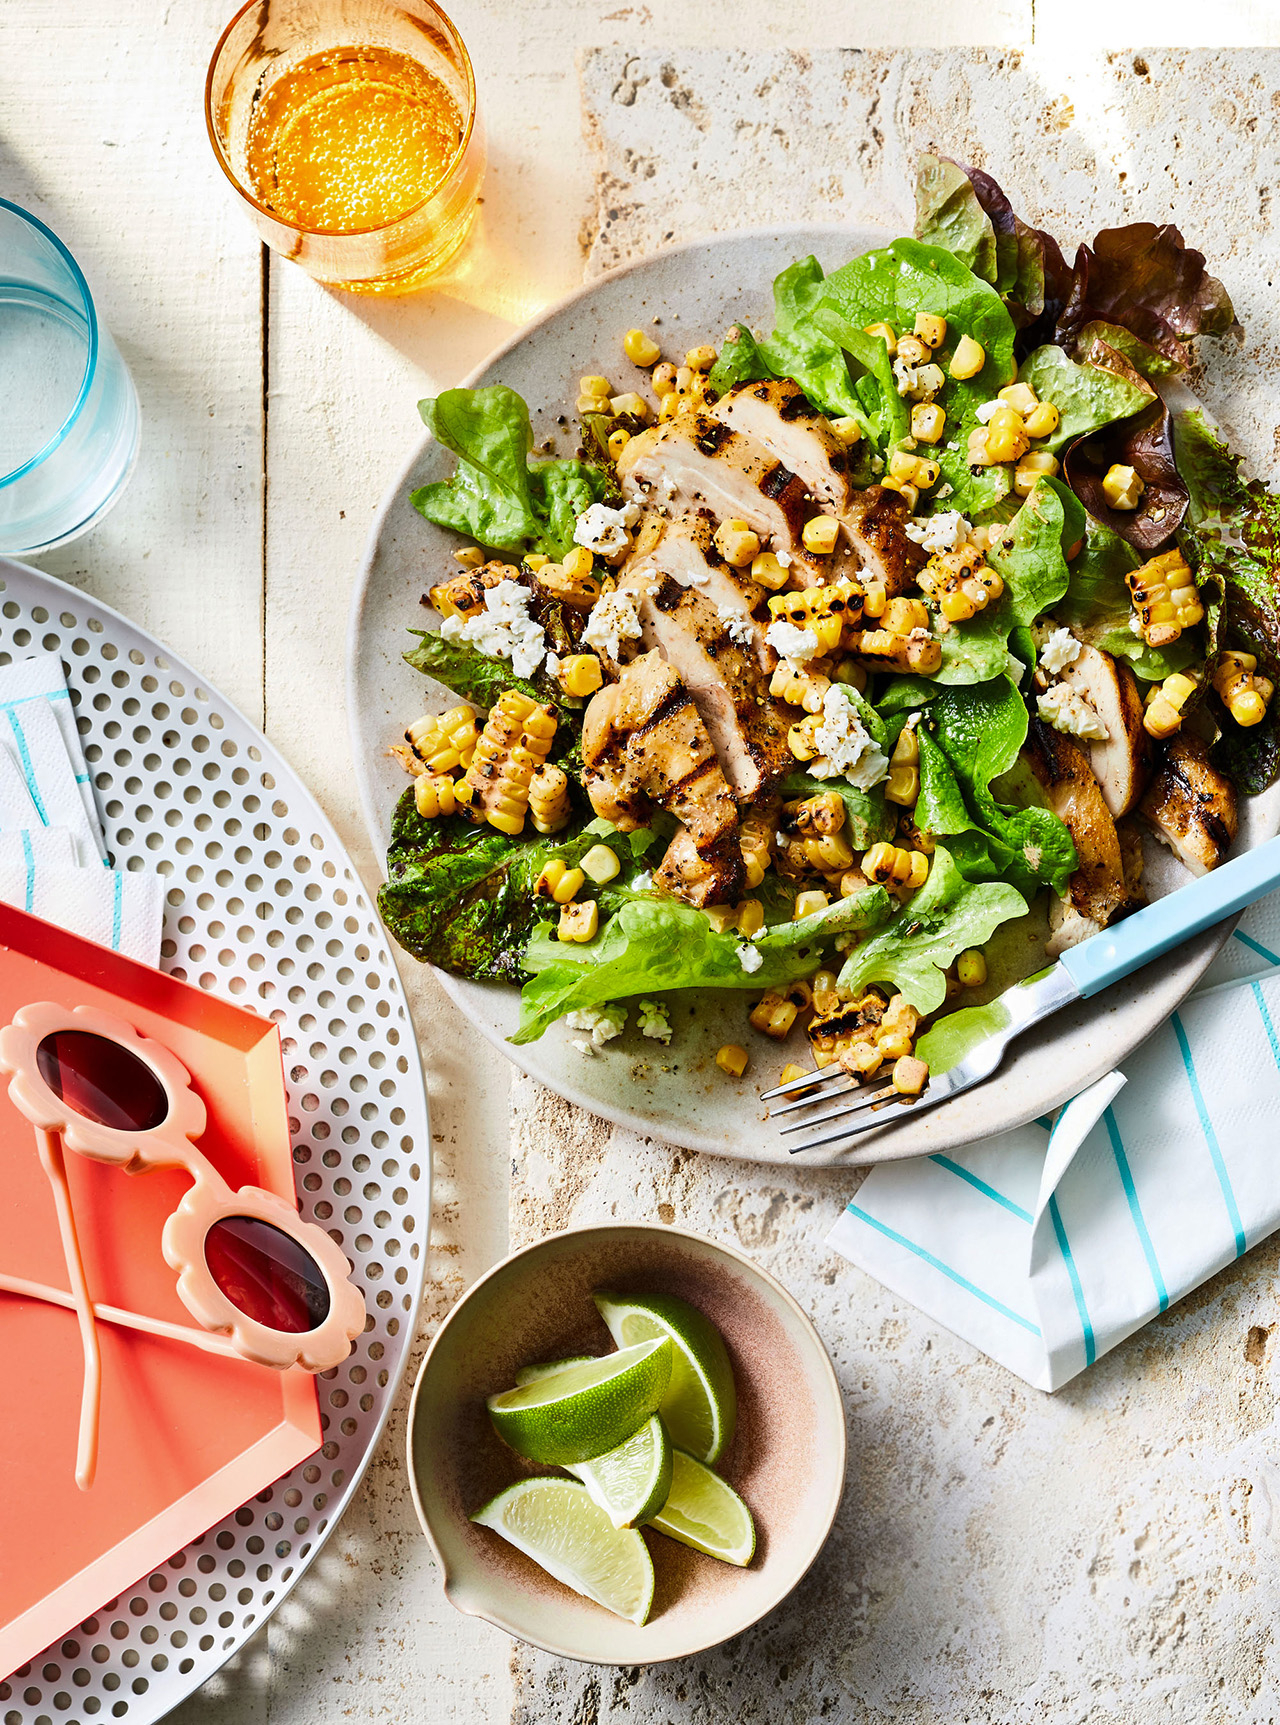 Grilled Chicken and Mexican Street Corn Salad